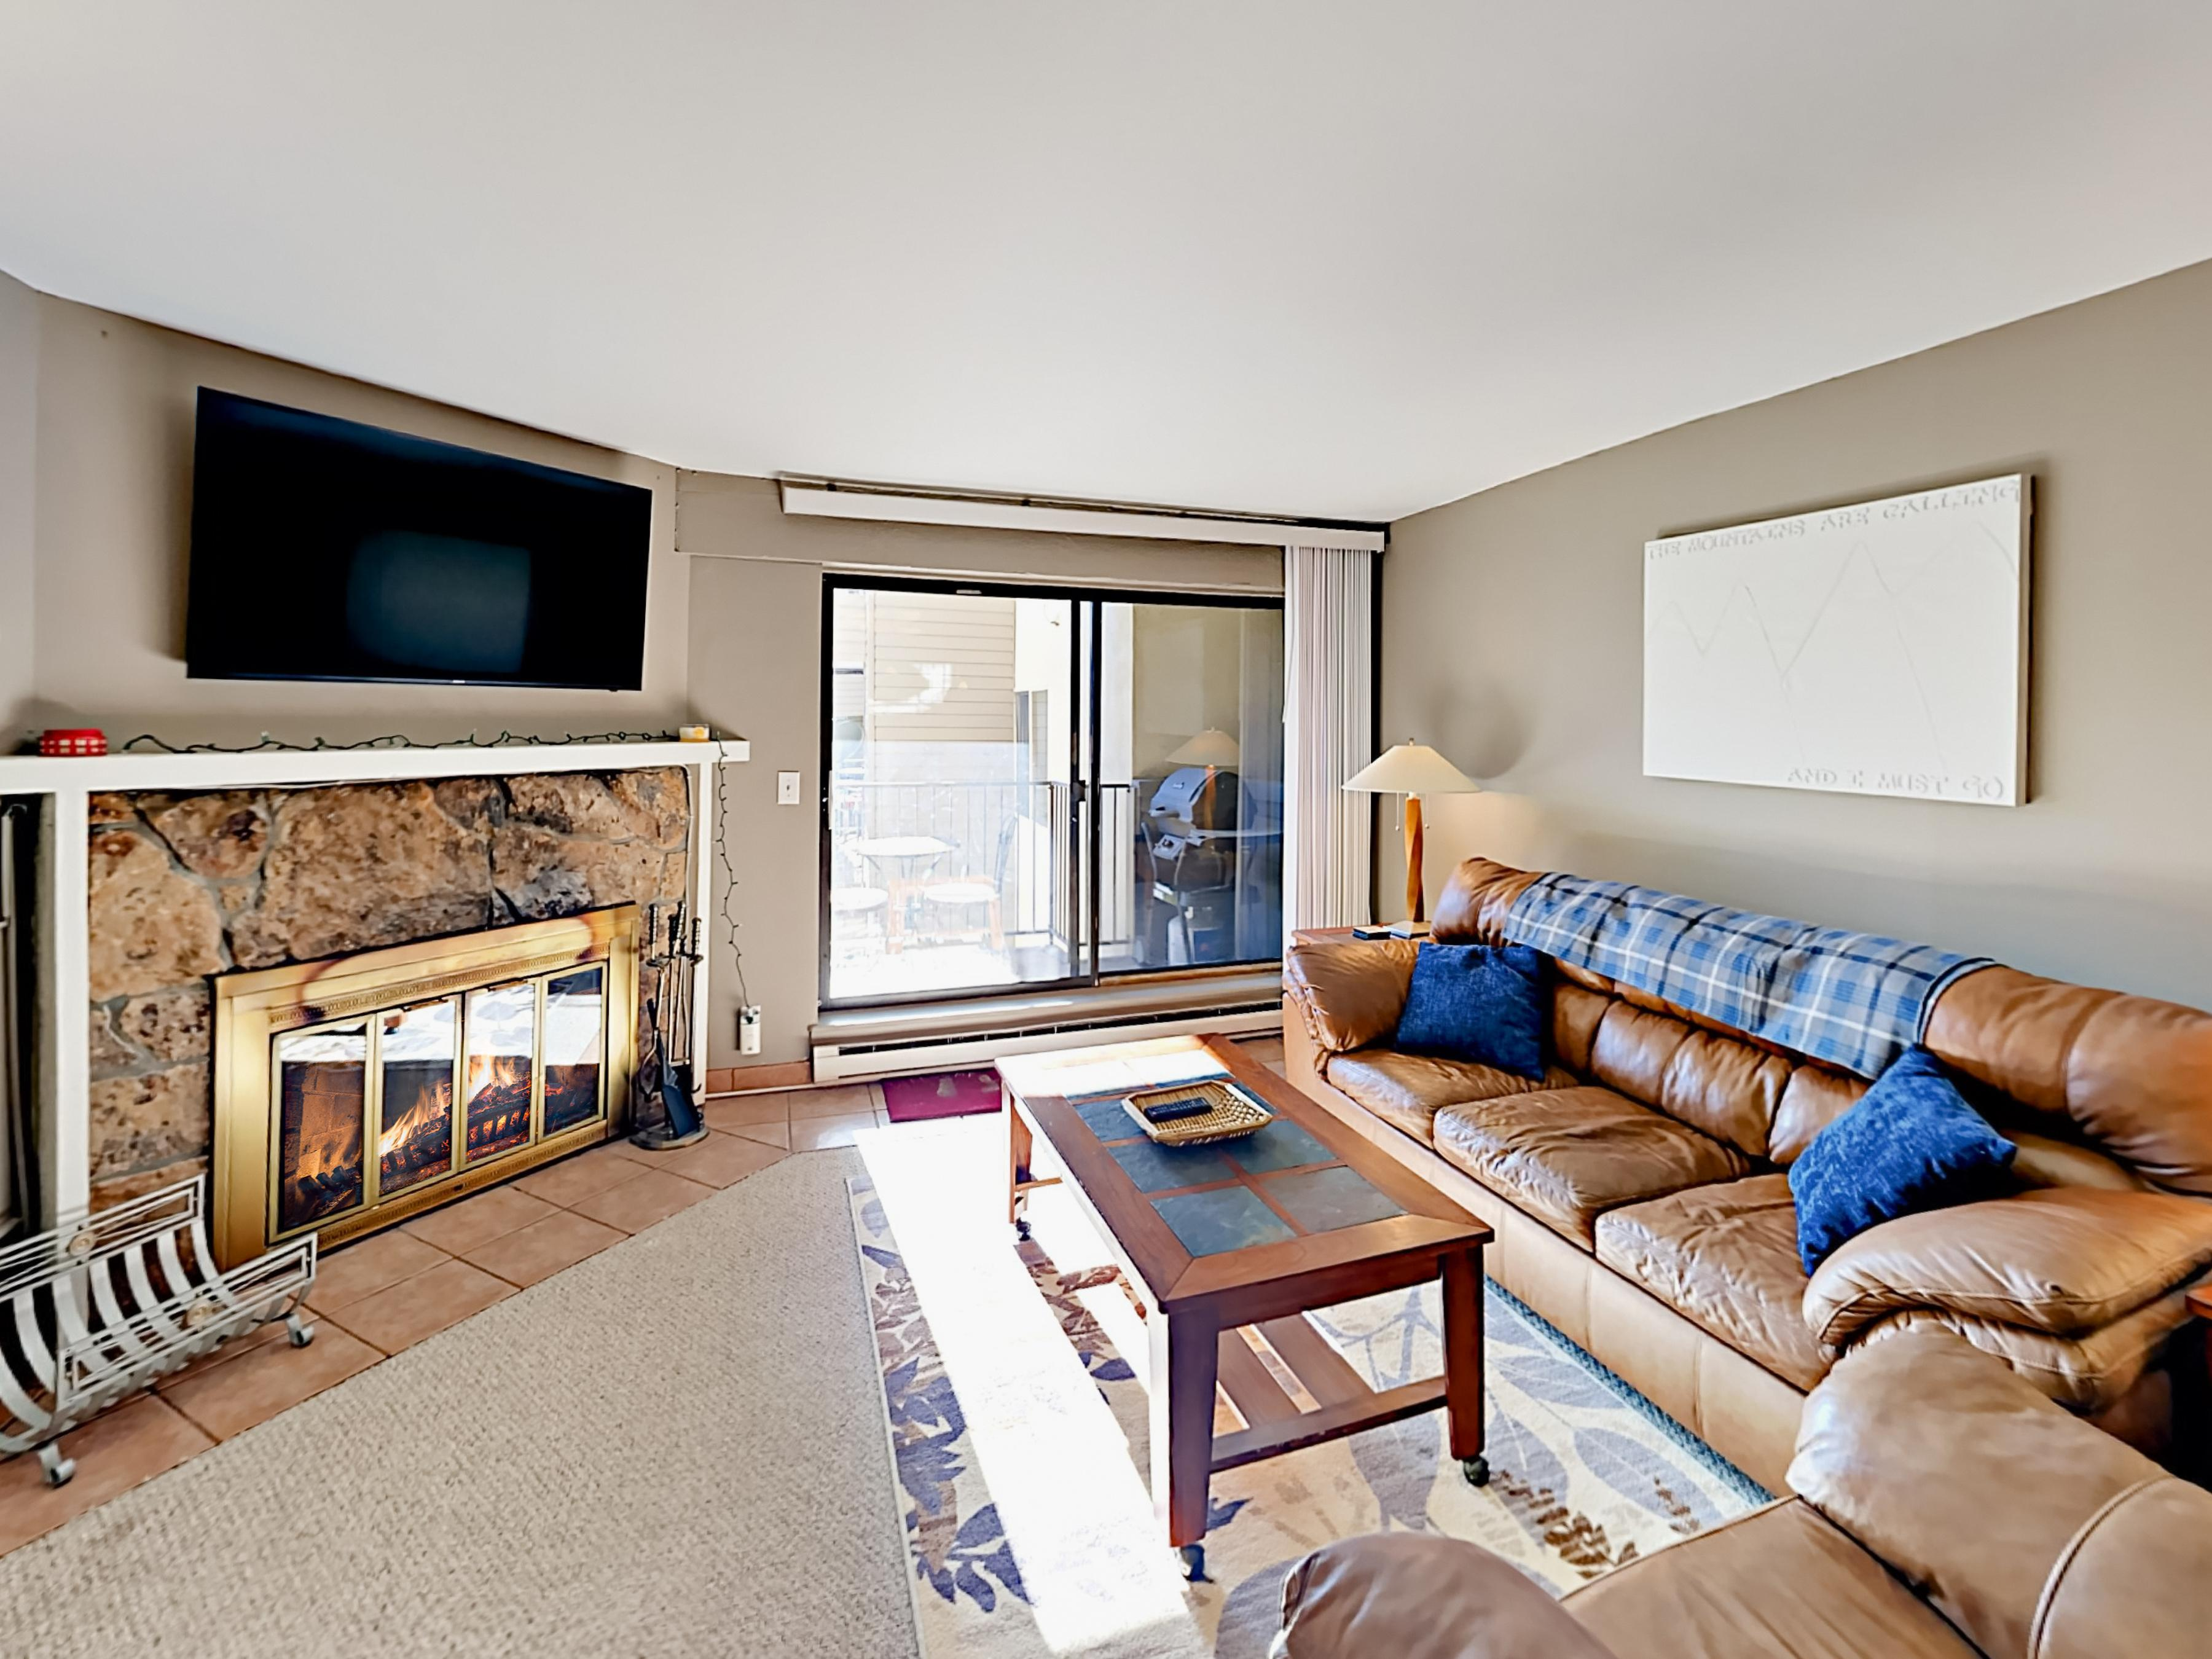 Welcome to Vail Valley! Your condo is professionally managed by TurnKey Vacation Rentals.